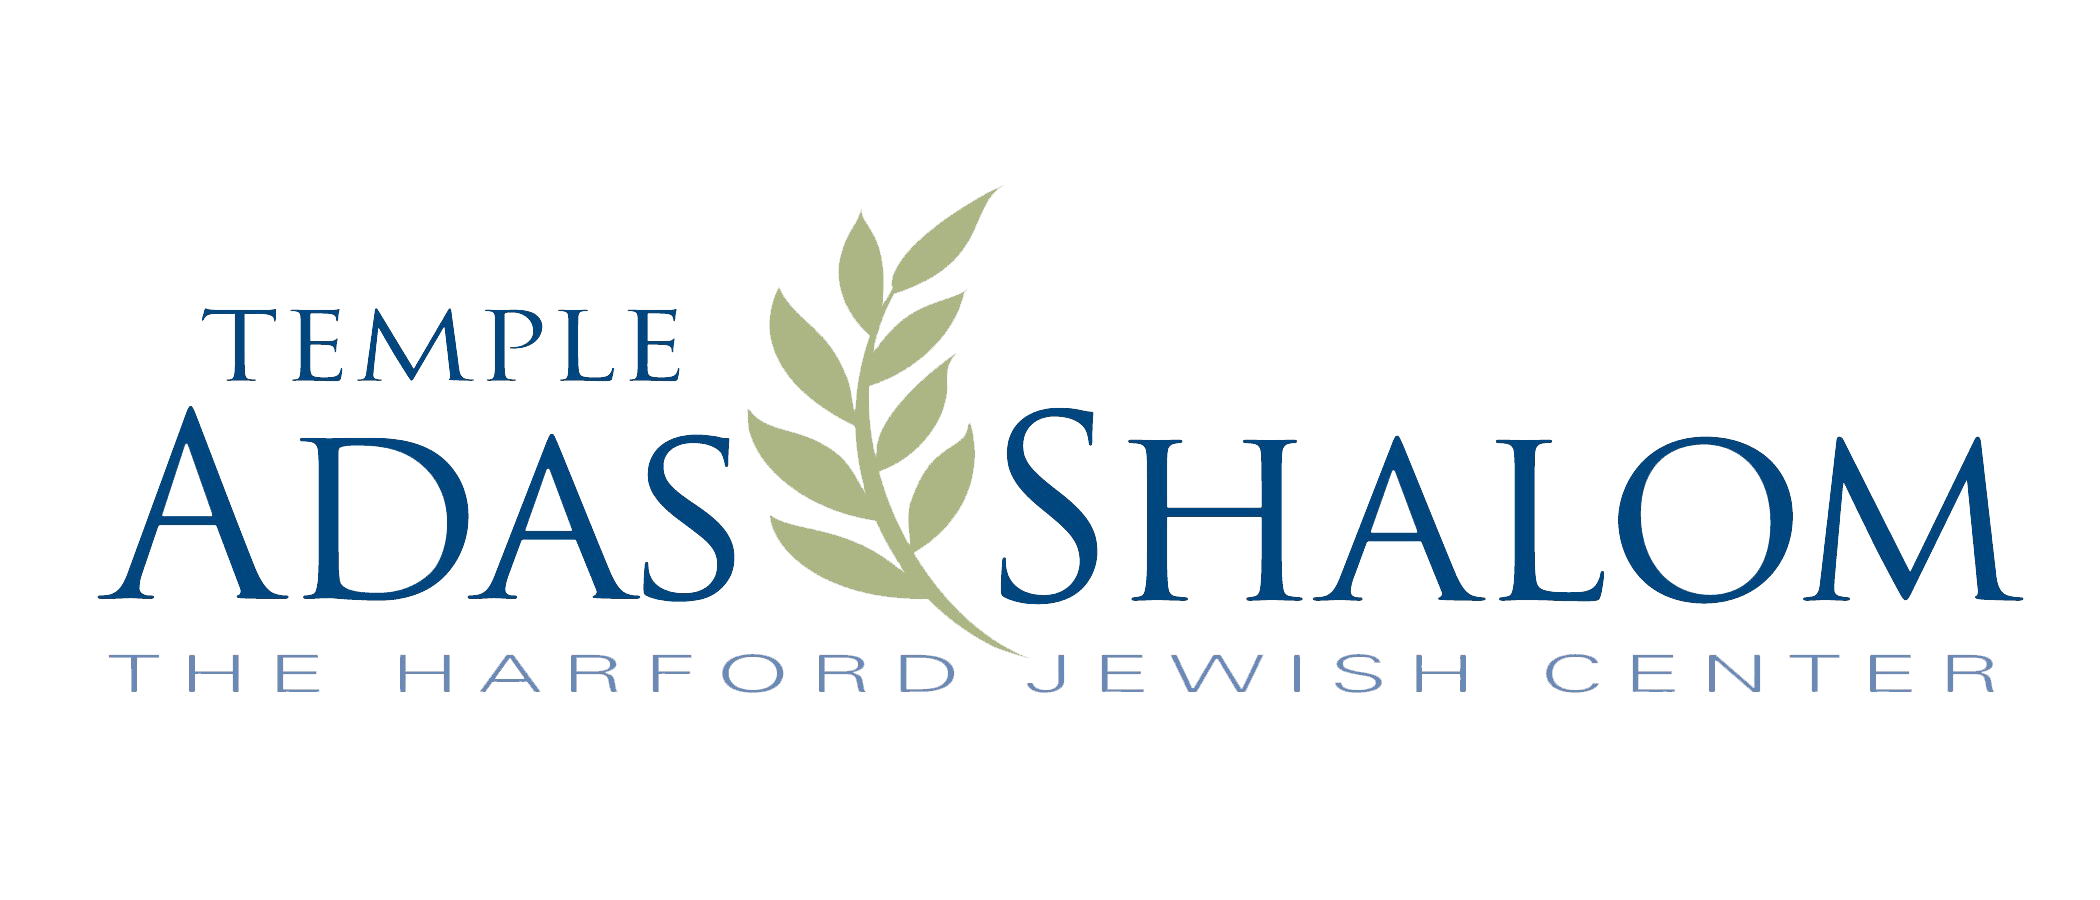 Temple Adas Shalom, the Harford Jewish Center